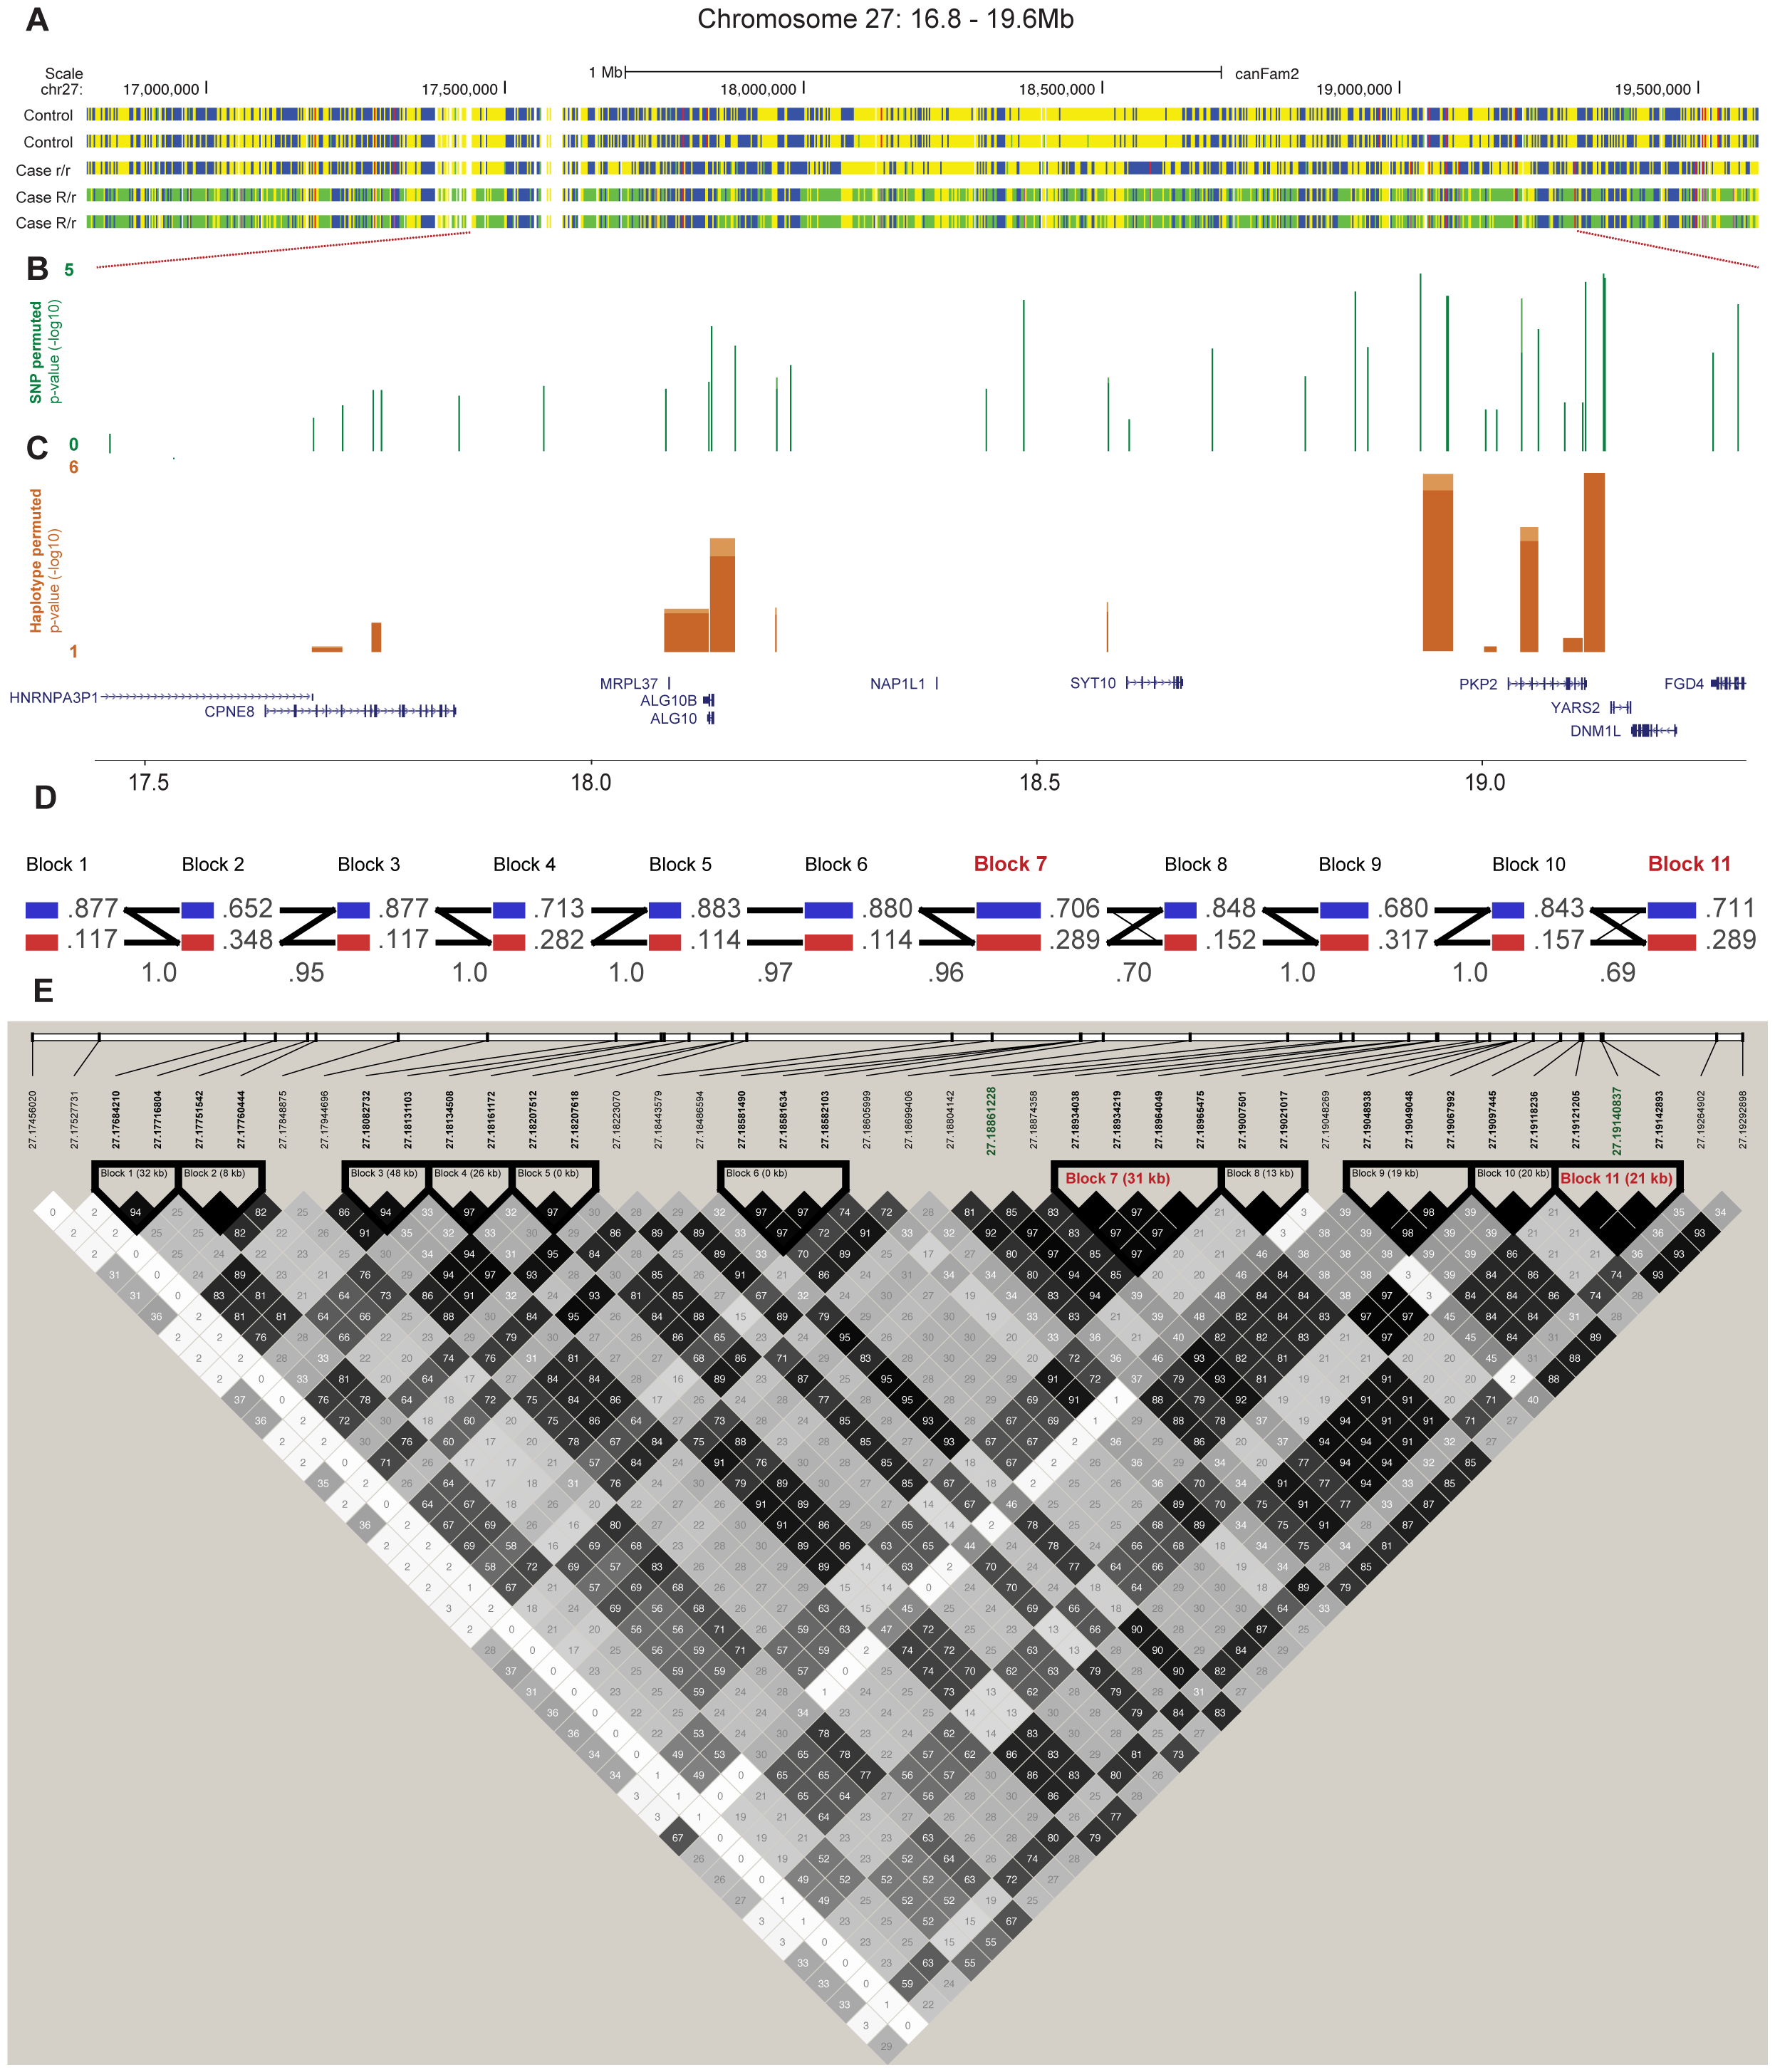 Fine-mapping of the chromosome 27 locus confirms the association with CAD and further pinpoints the region around the <i>PKP2</i> gene.